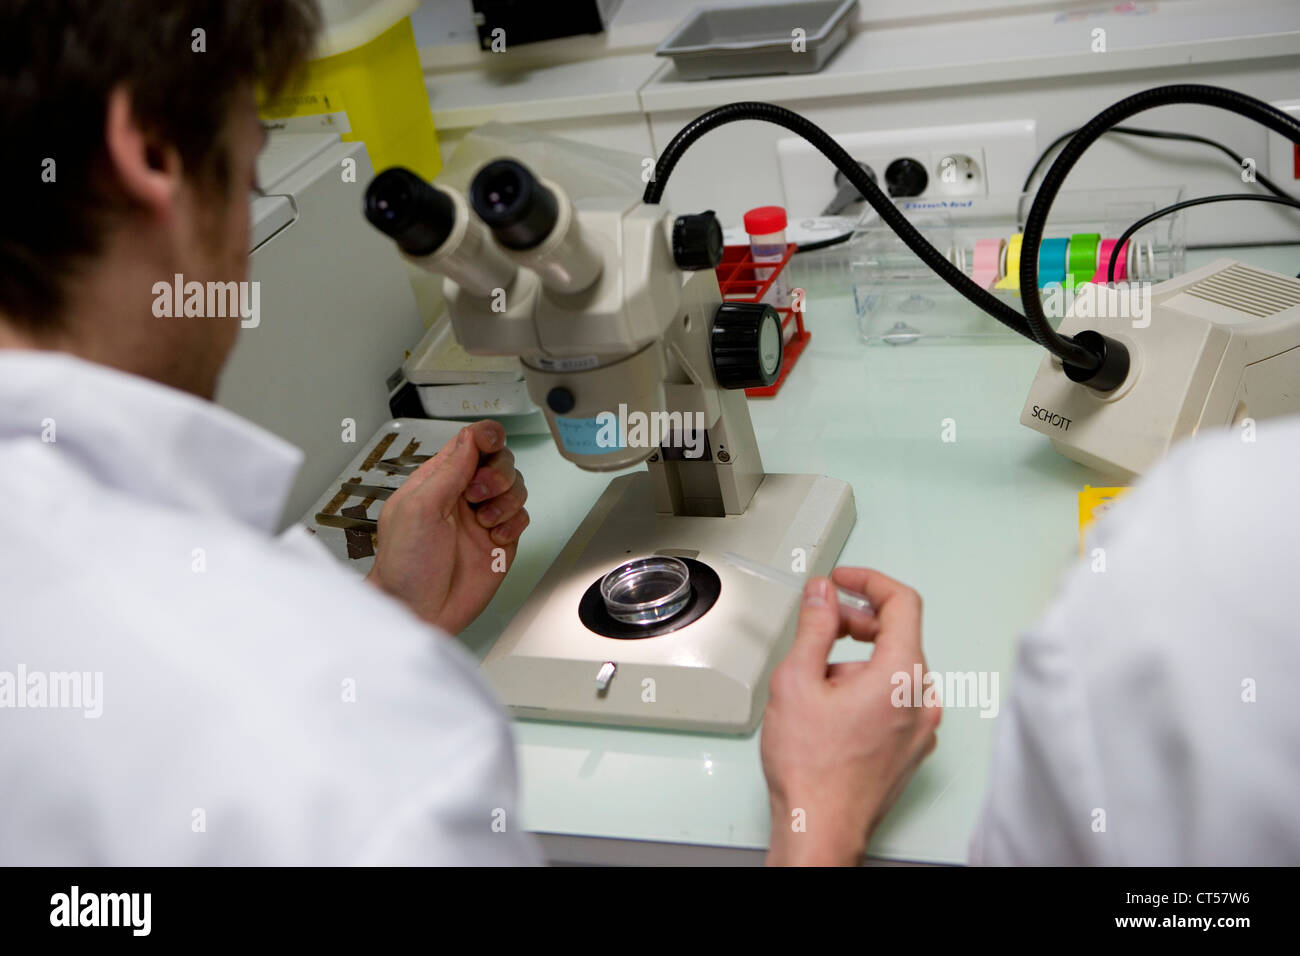 EYE RESEARCH Stockfoto